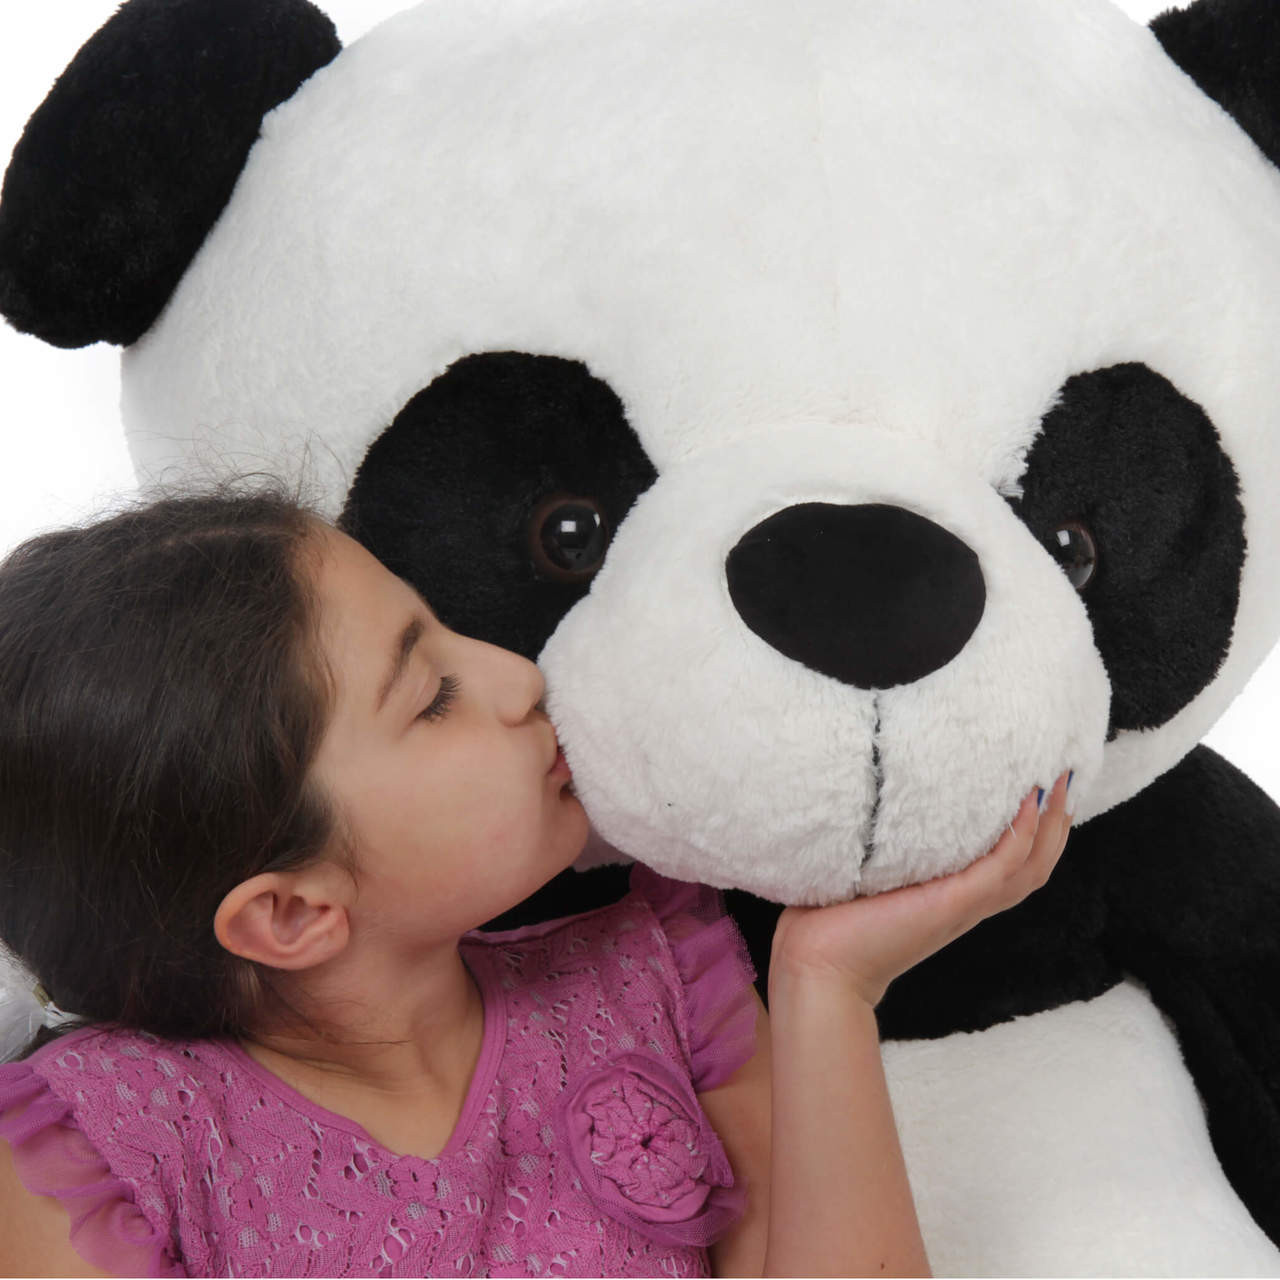 Giant Panda Teddy Bear 5 Foot Stuffed Animal Toy